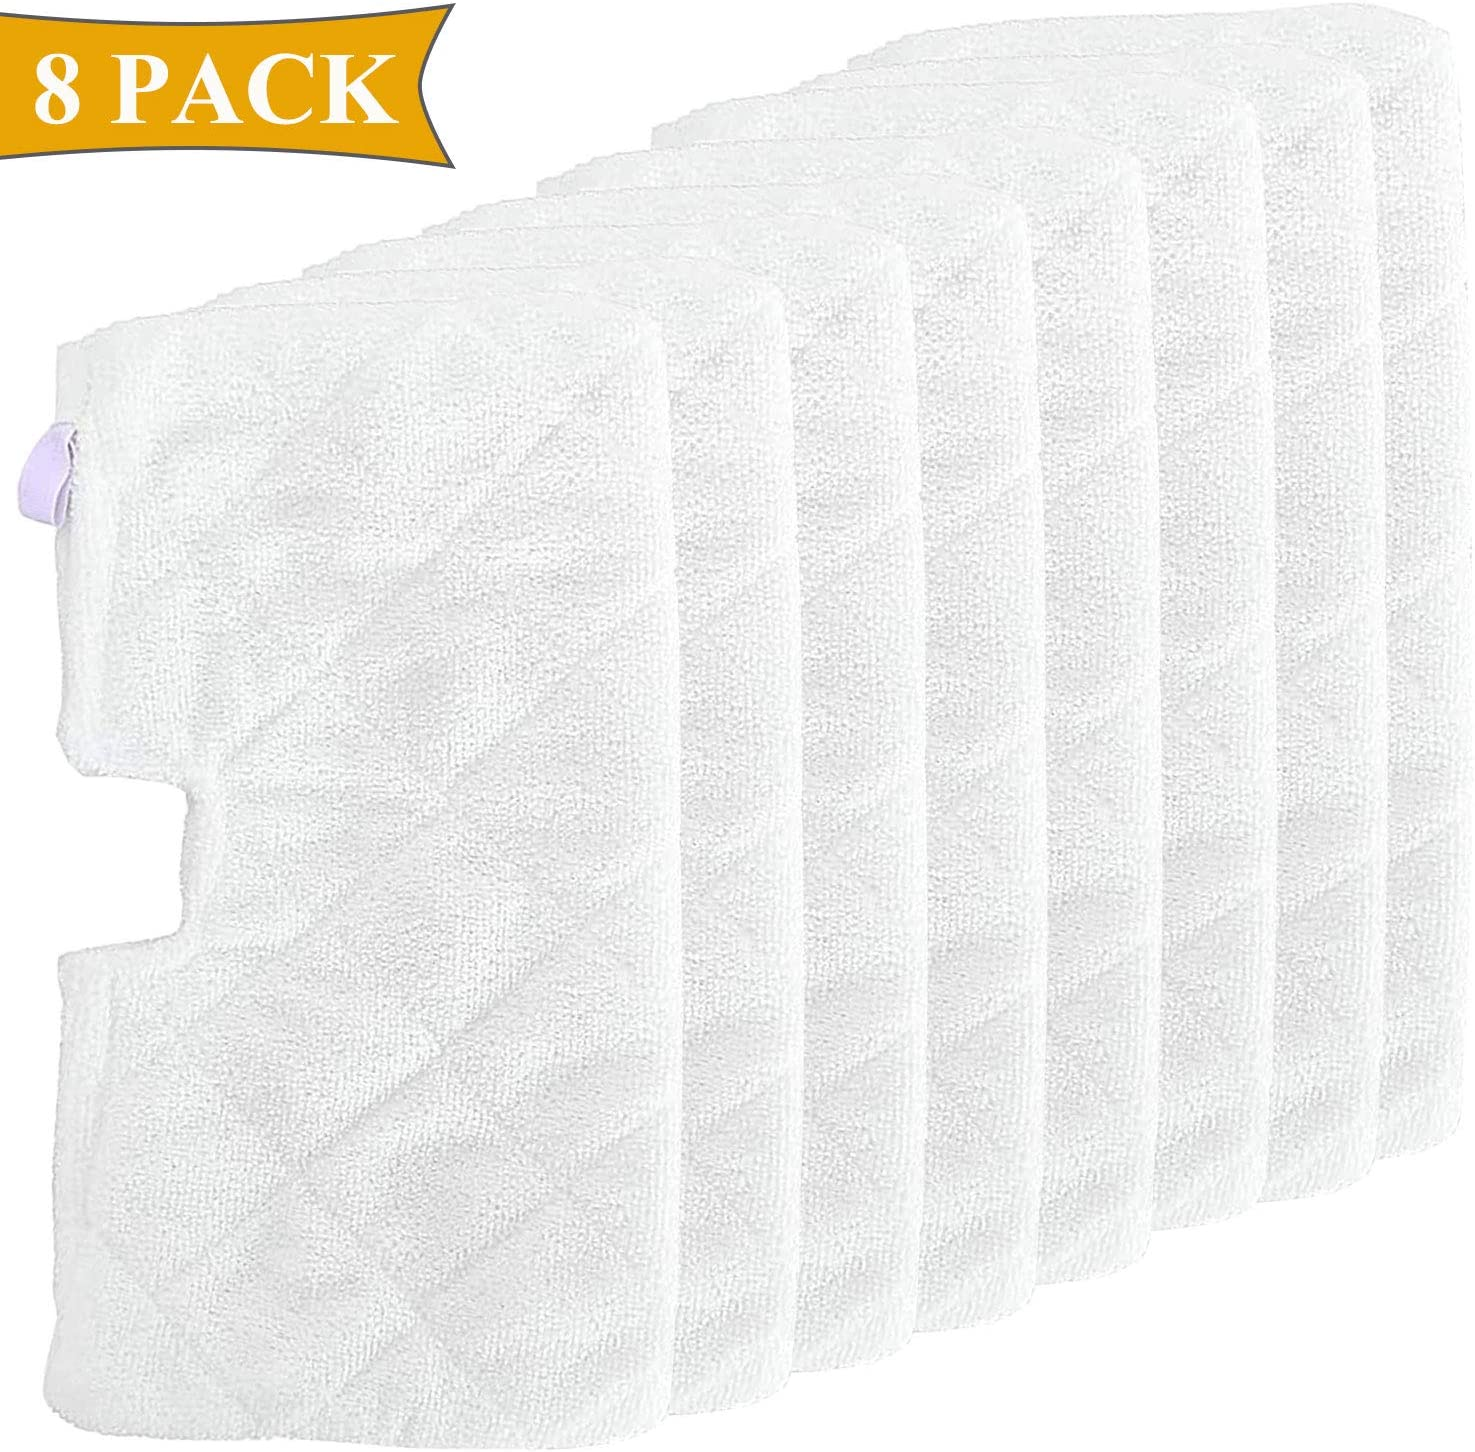 FFsign 8 Pack Replacement Cleaning Microfiber Steam Mop Pads for Shark Steam Pocket Mop S3500 Series S3501 S3550 S3601 S3601D S3801 S3801CO S3901 SE450 S2902